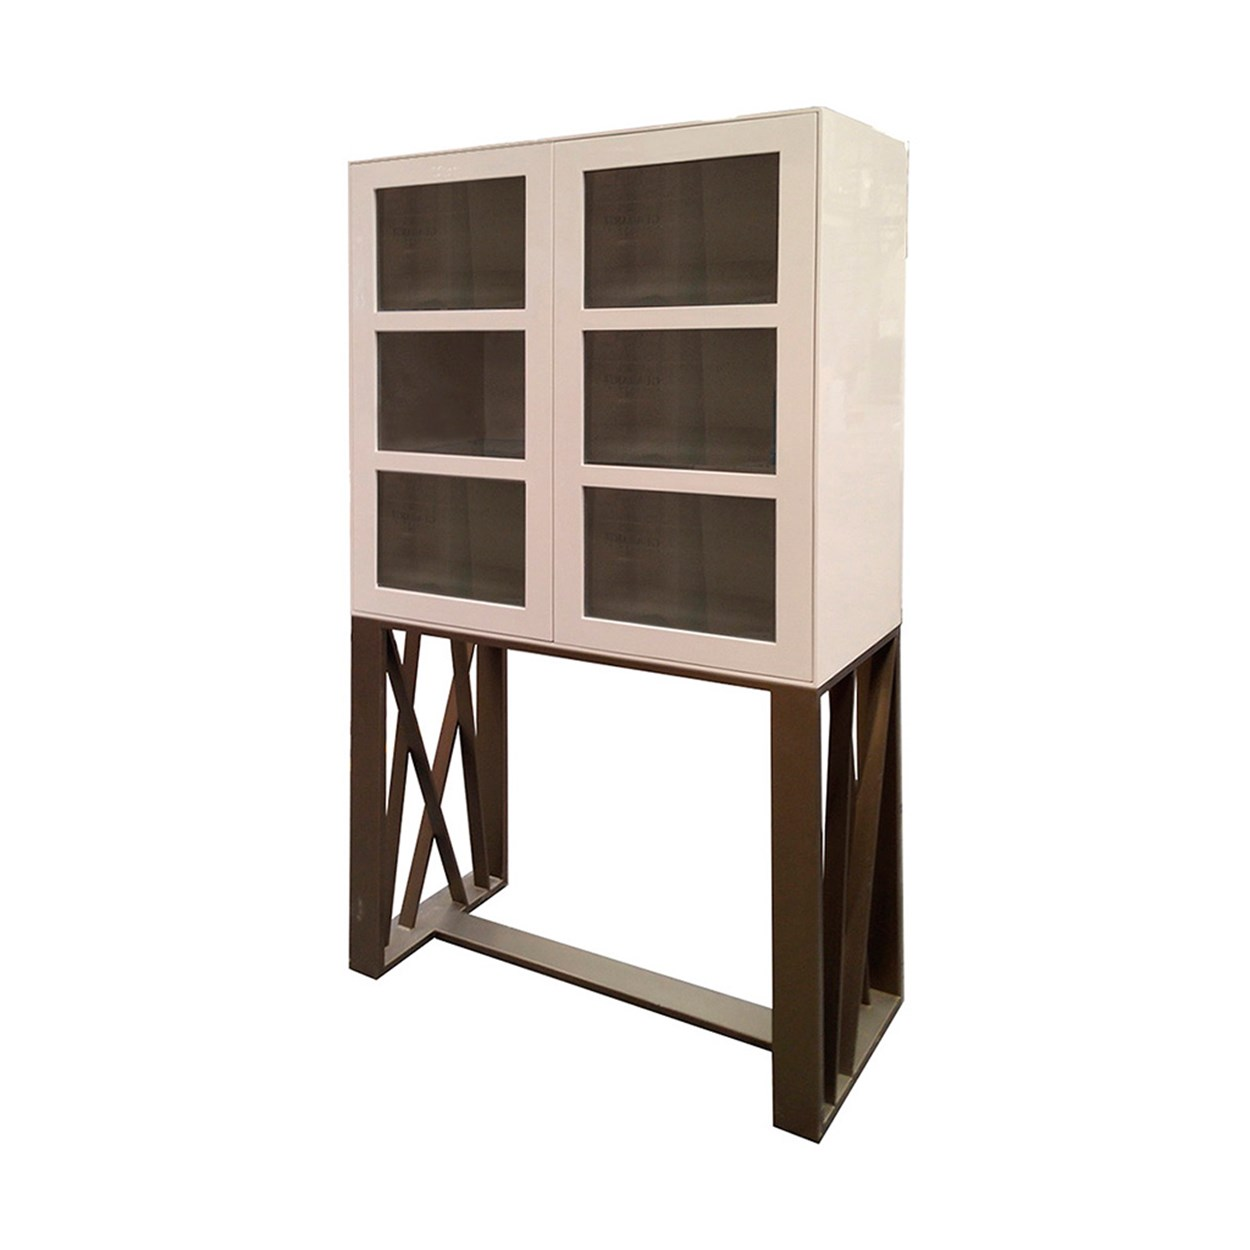 guadarte-M20172-display-cabinet.jpg